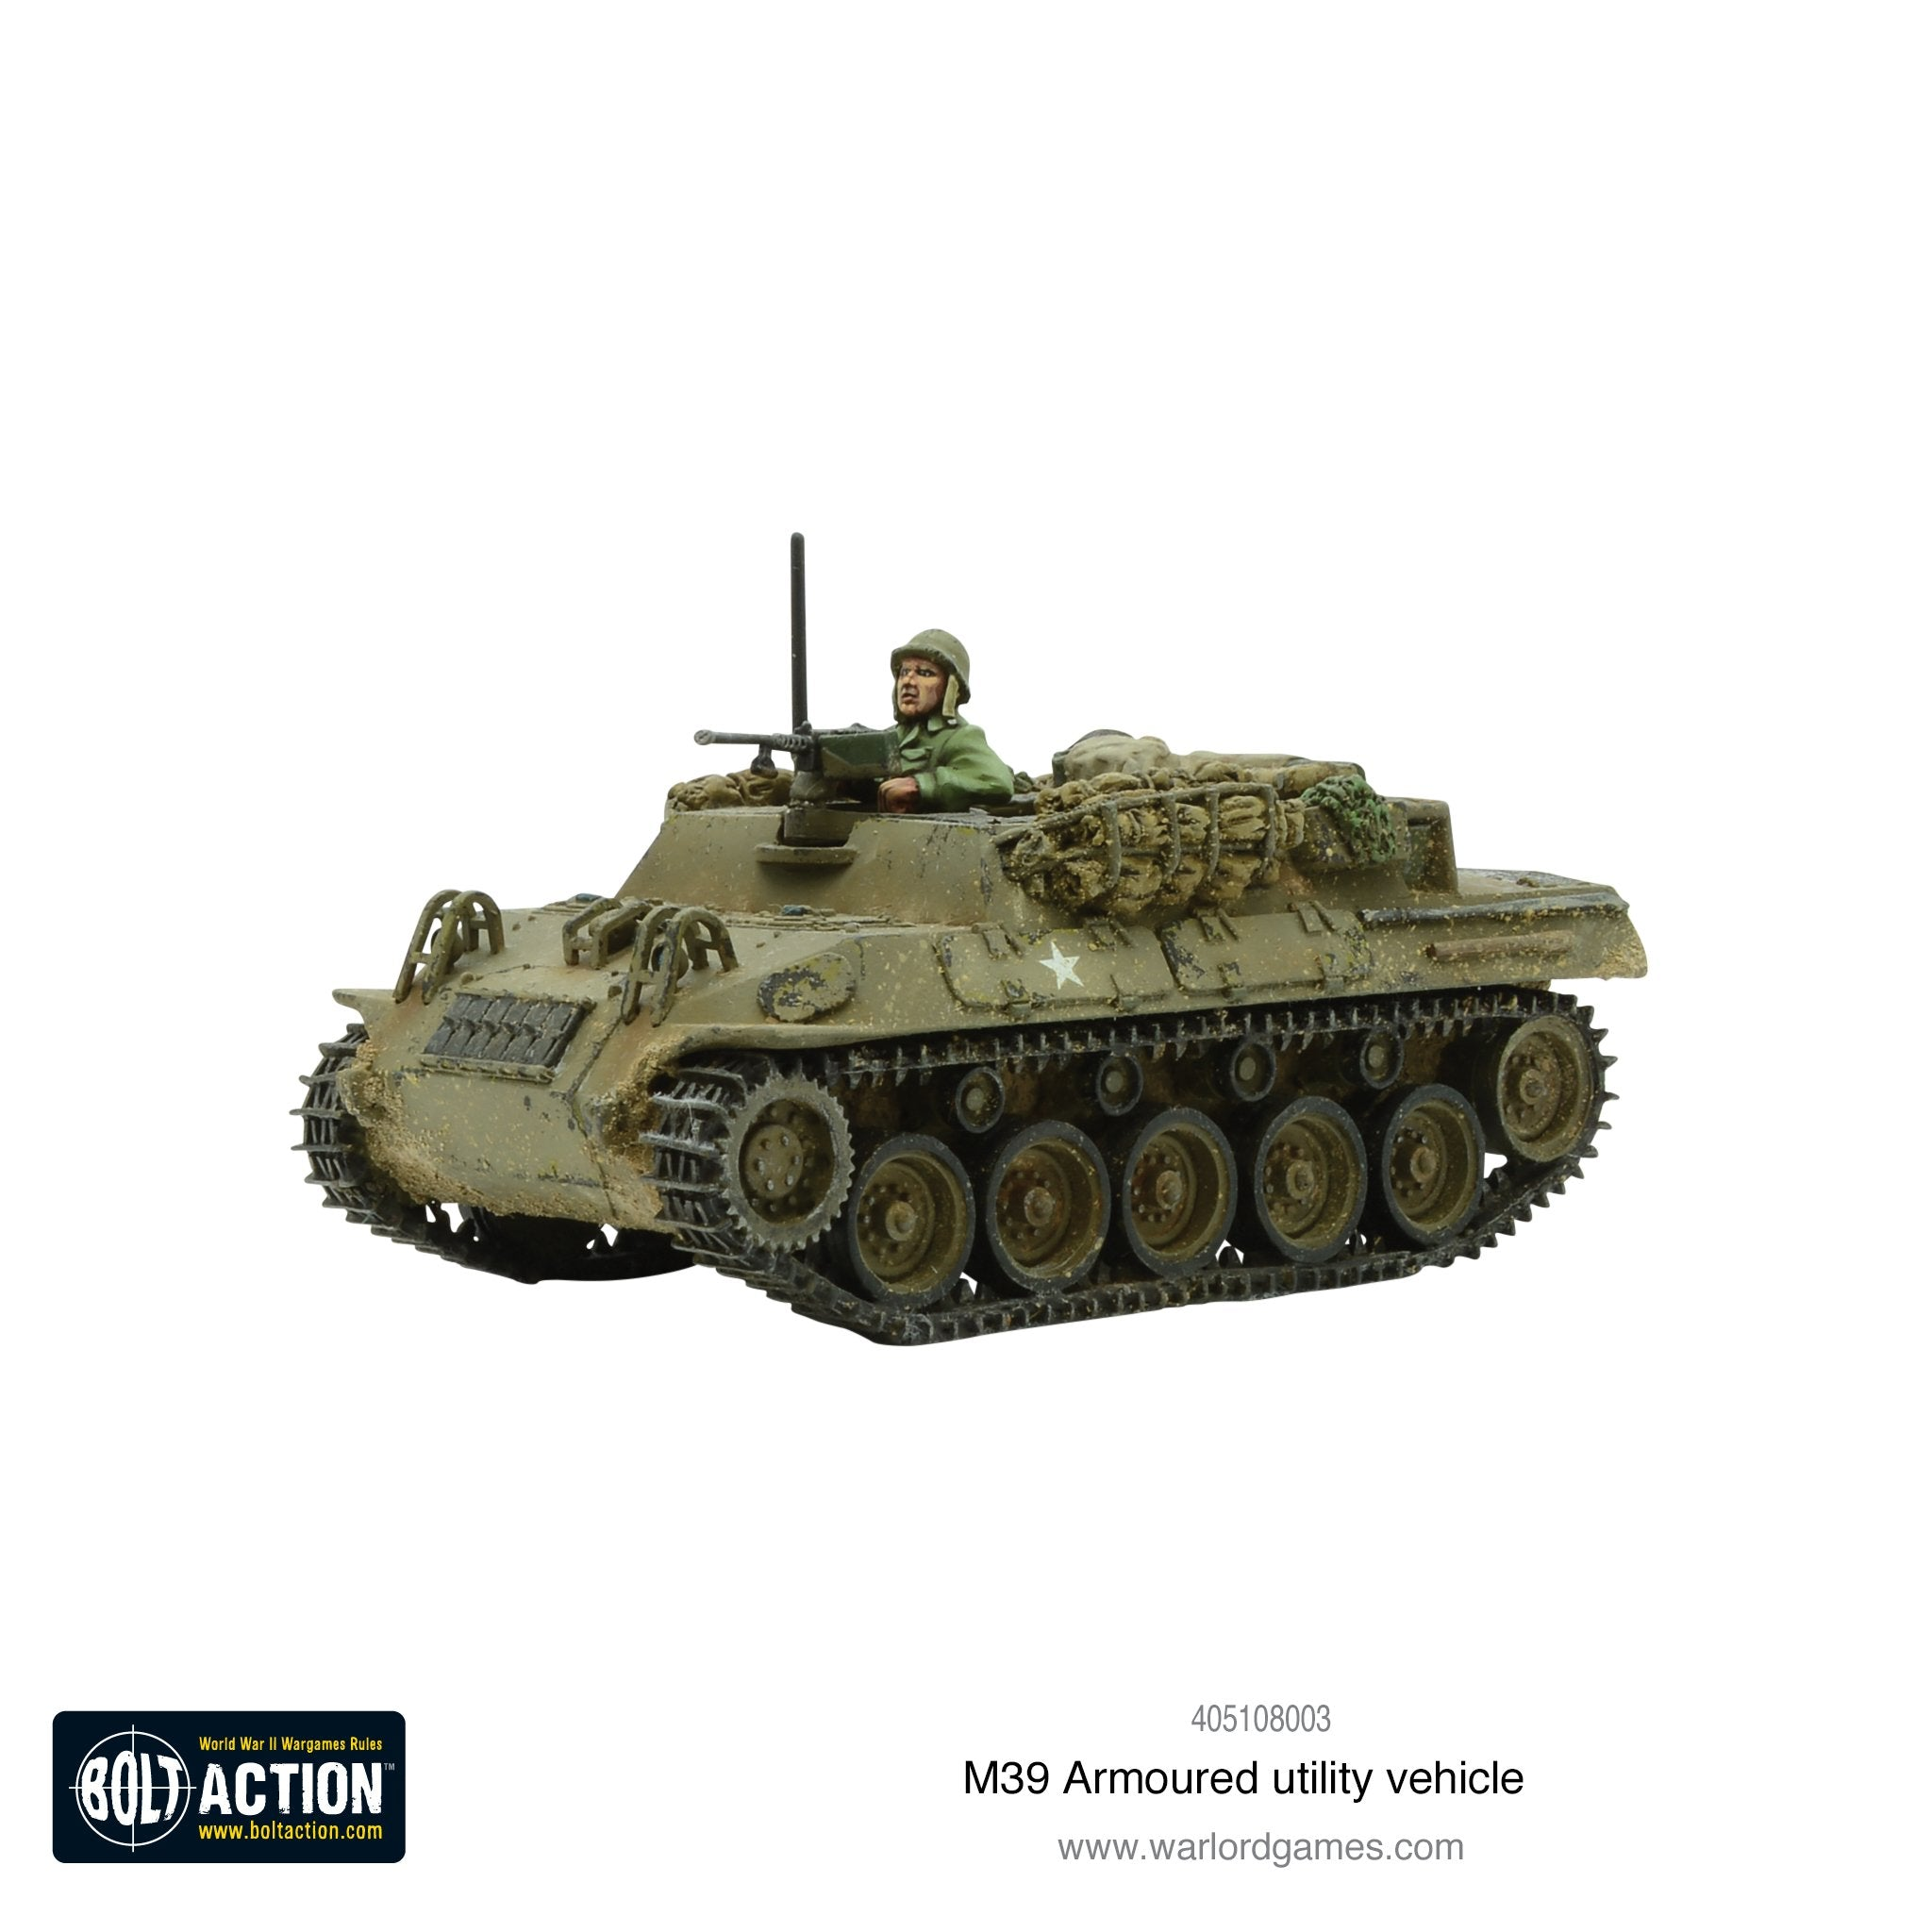 M39 armoured utility vehicle